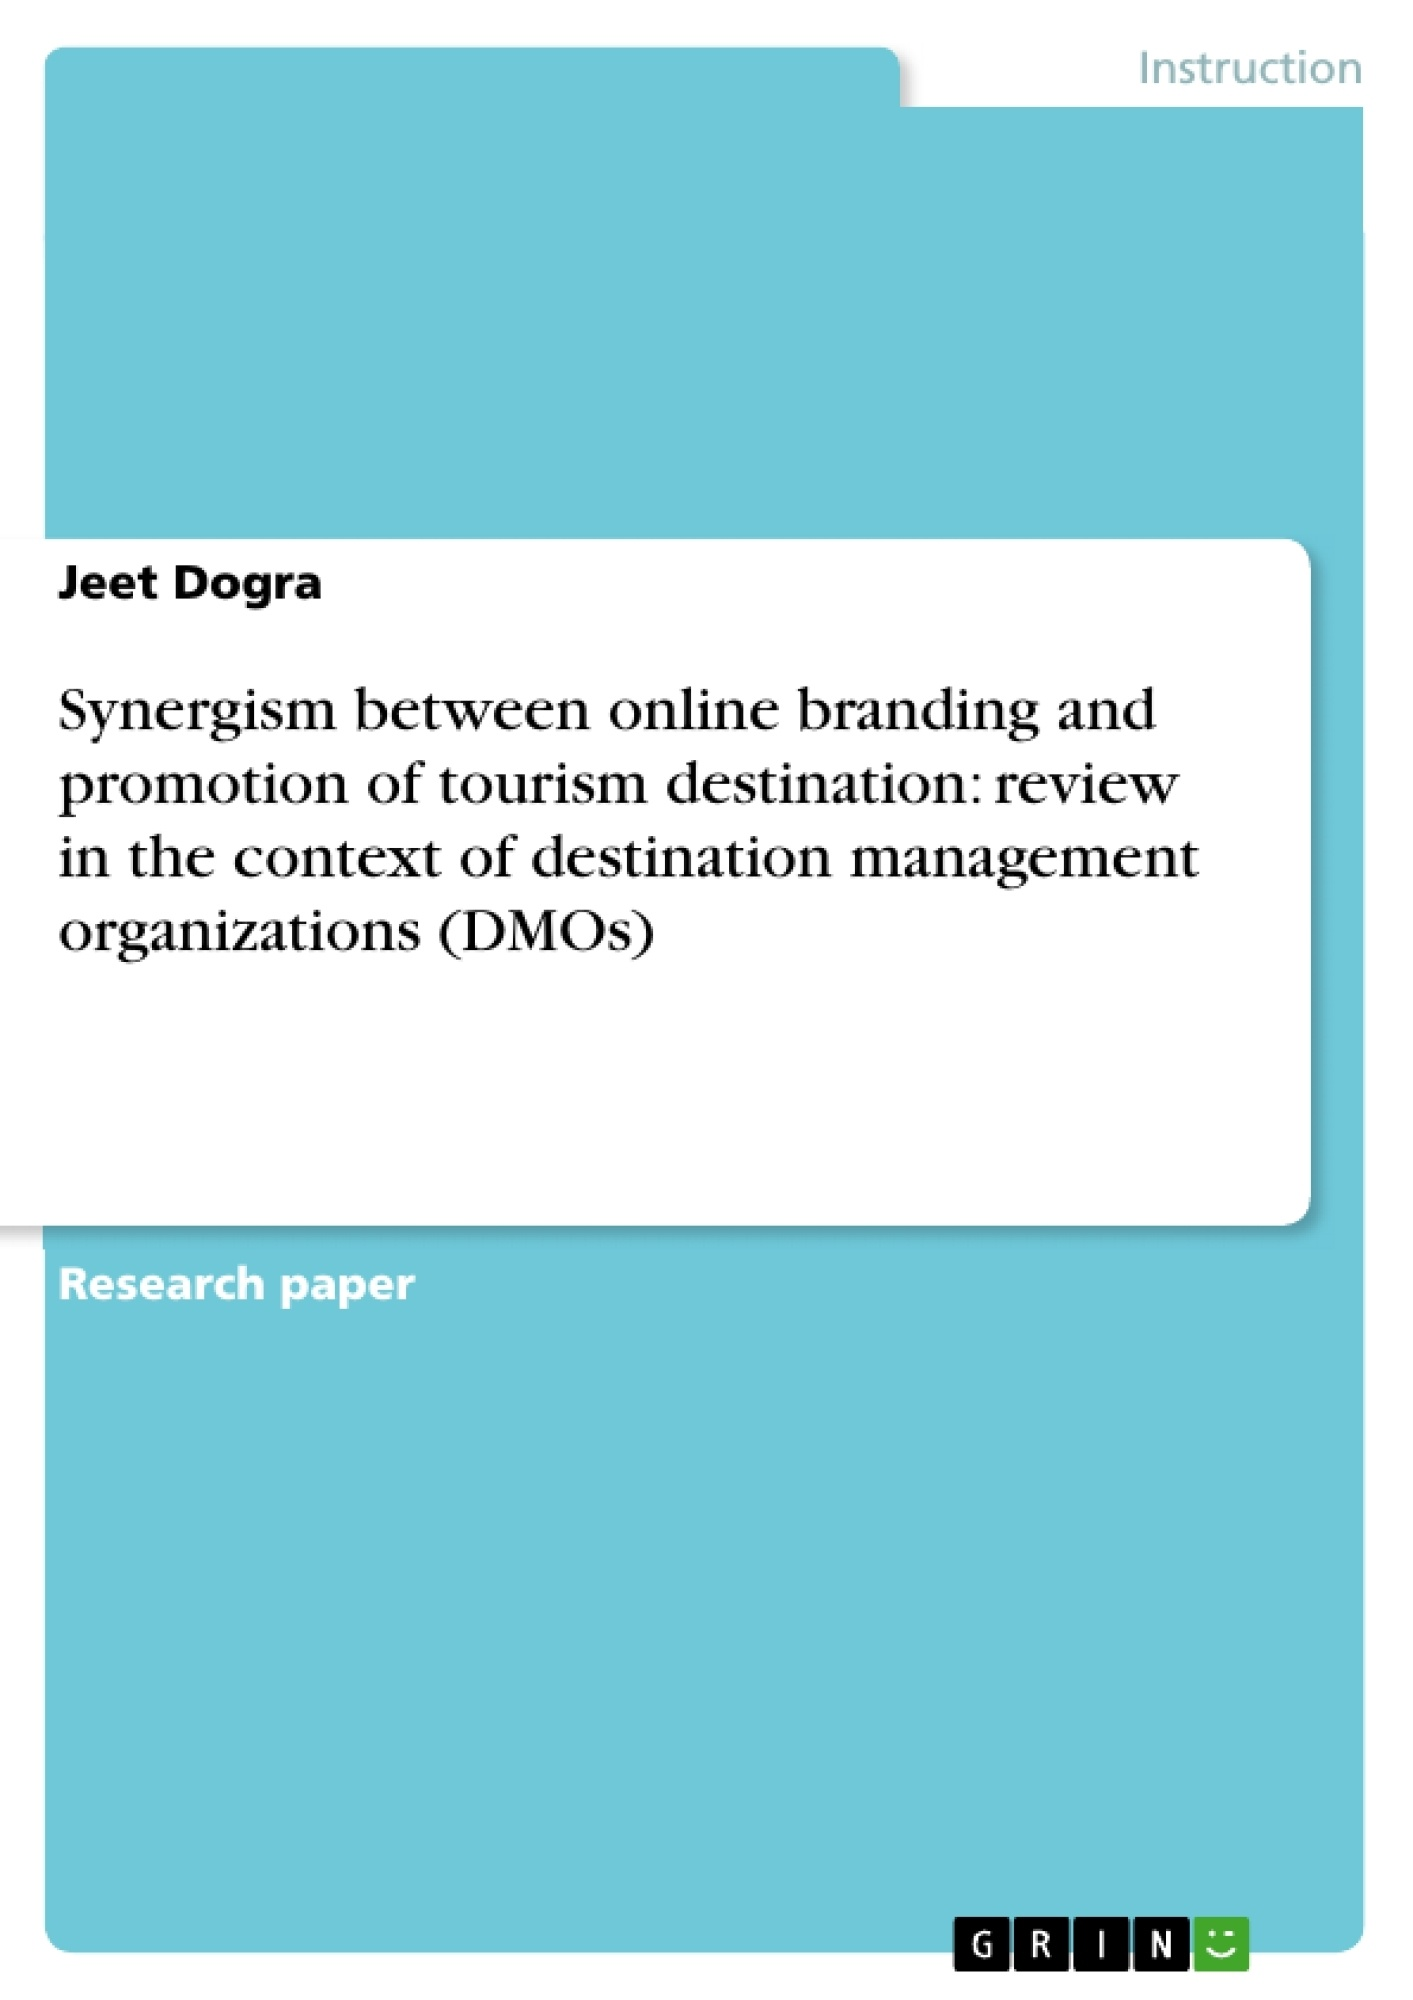 Title: Synergism between online branding and promotion of tourism destination: review in the context of destination management organizations (DMOs)